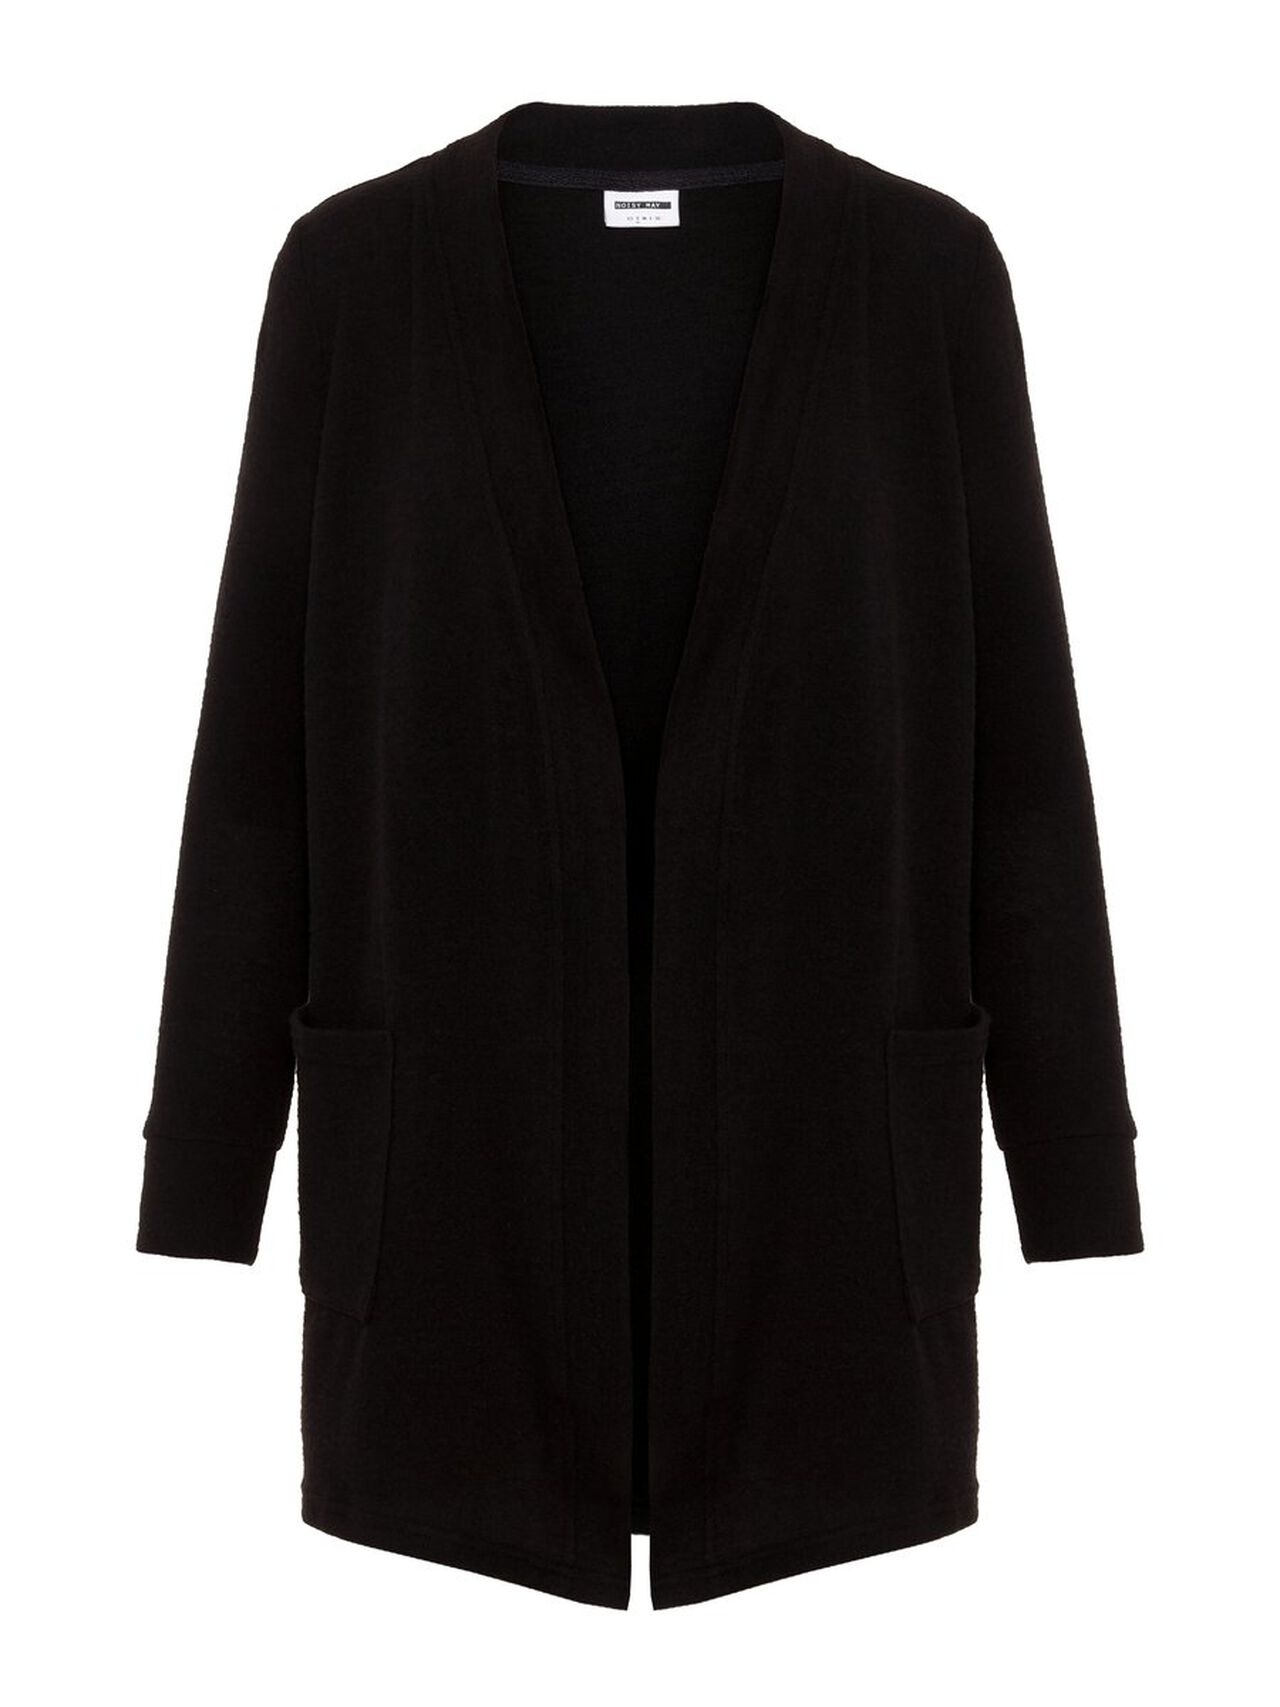 NOISY MAY Knitted Cardigan Women Black